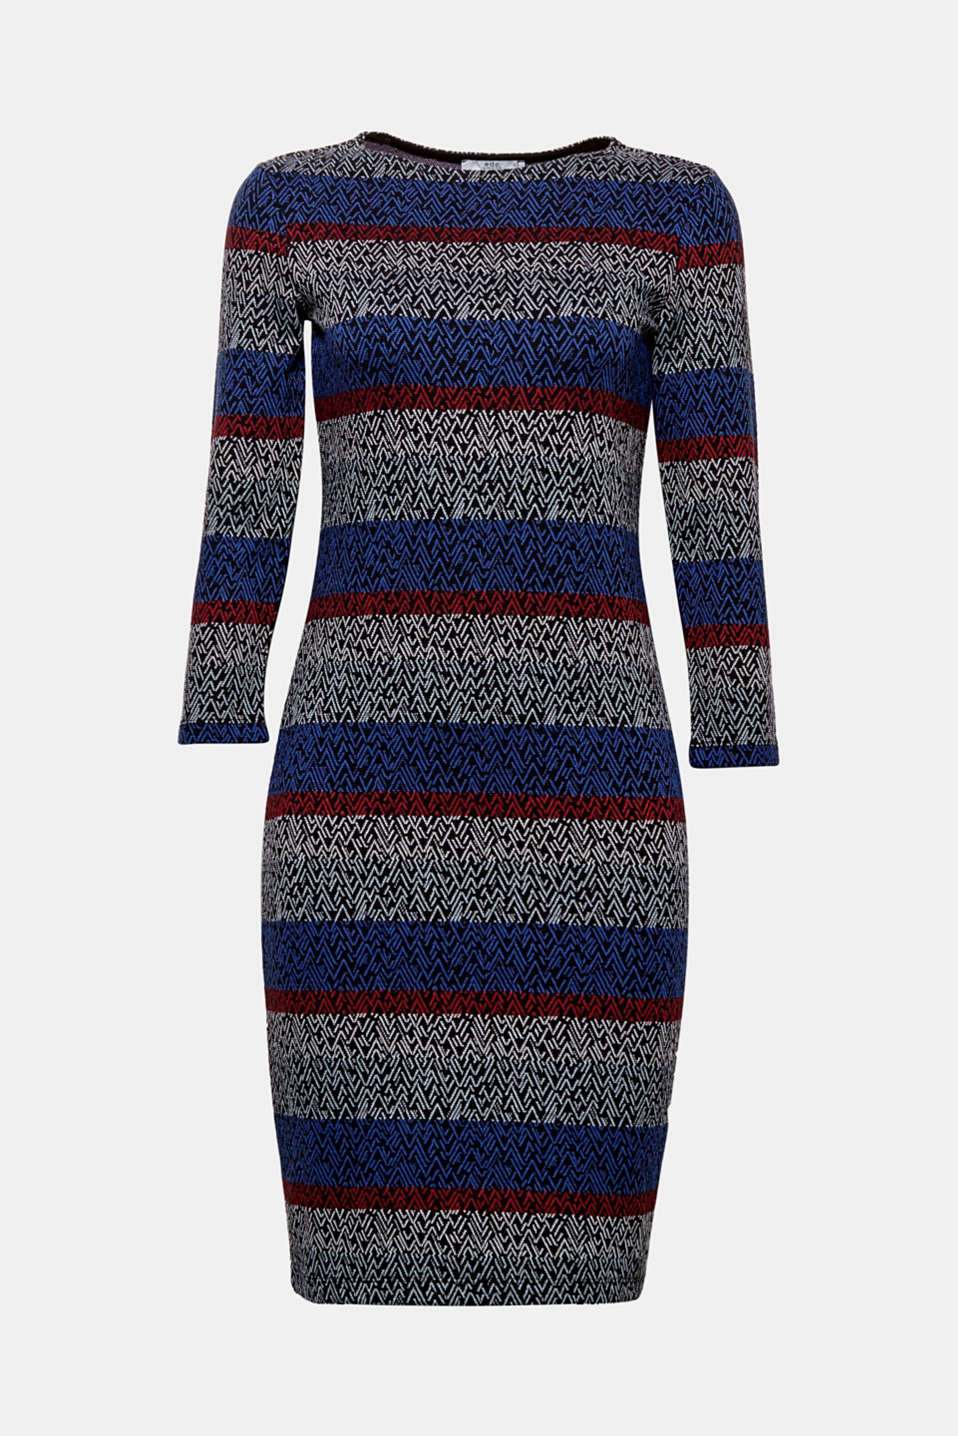 So easy, so feminine: this bodycon sweatshirt dress with a decorative ikat pattern.